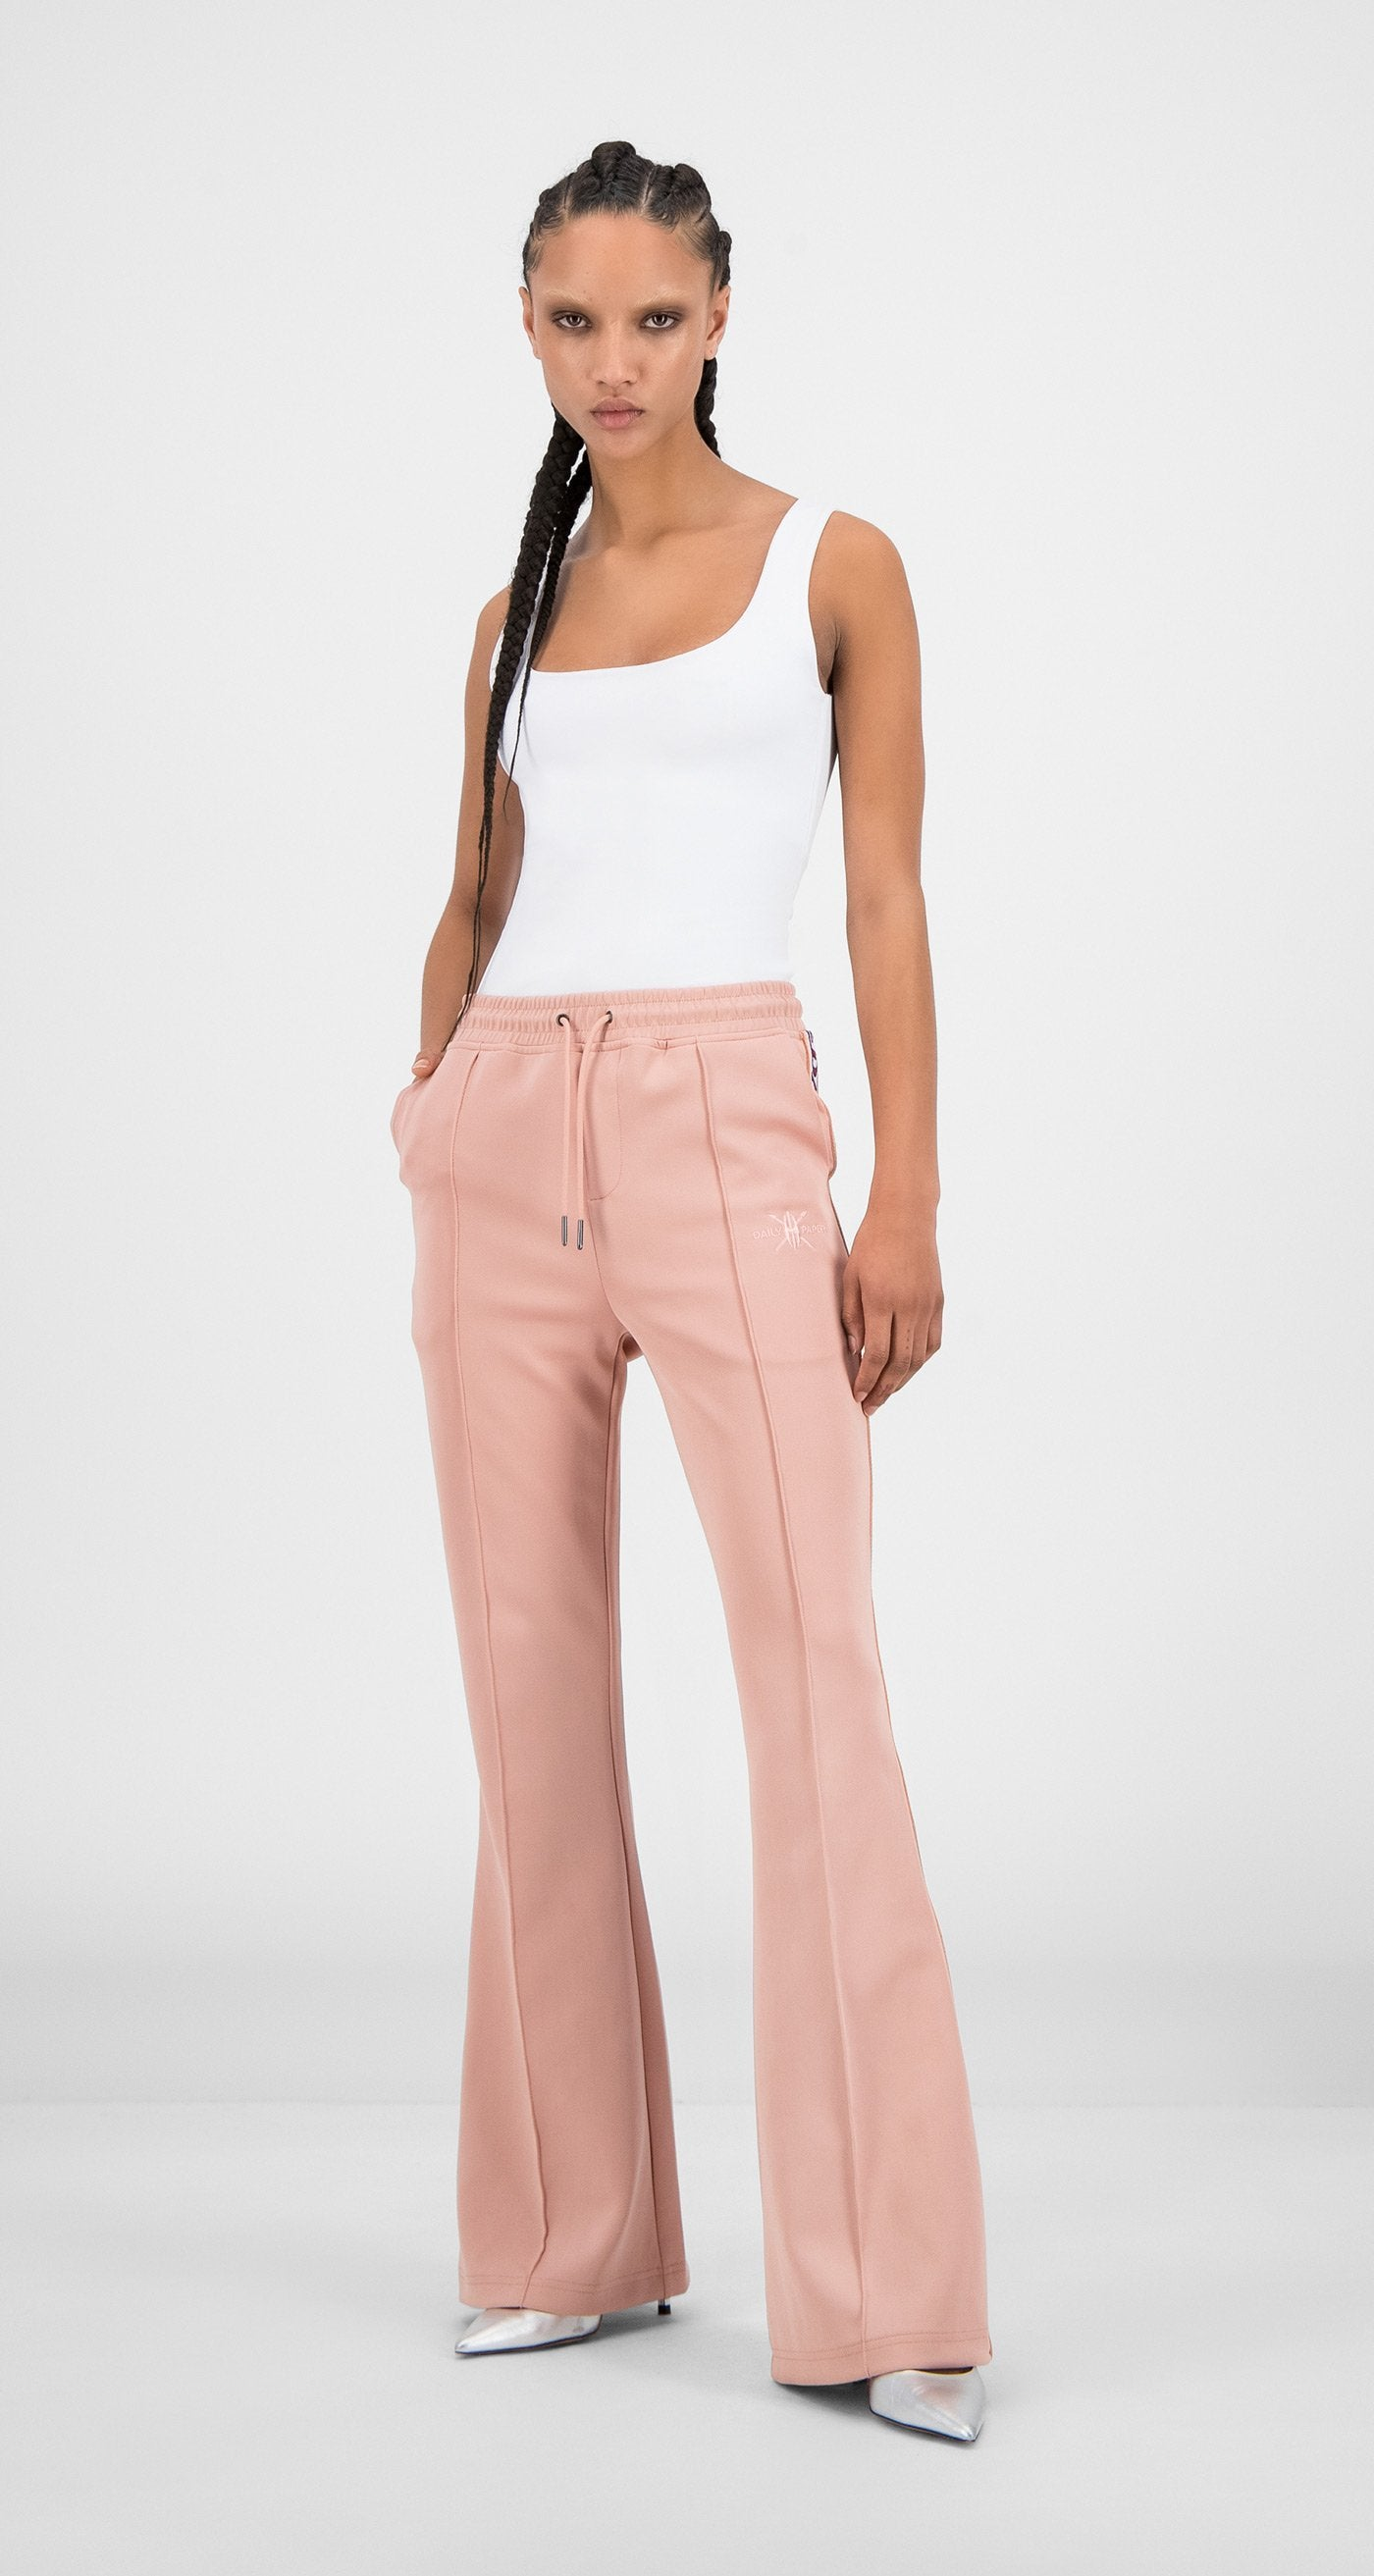 Daily Paper - Misty Rose Flair Tape Pants - Women